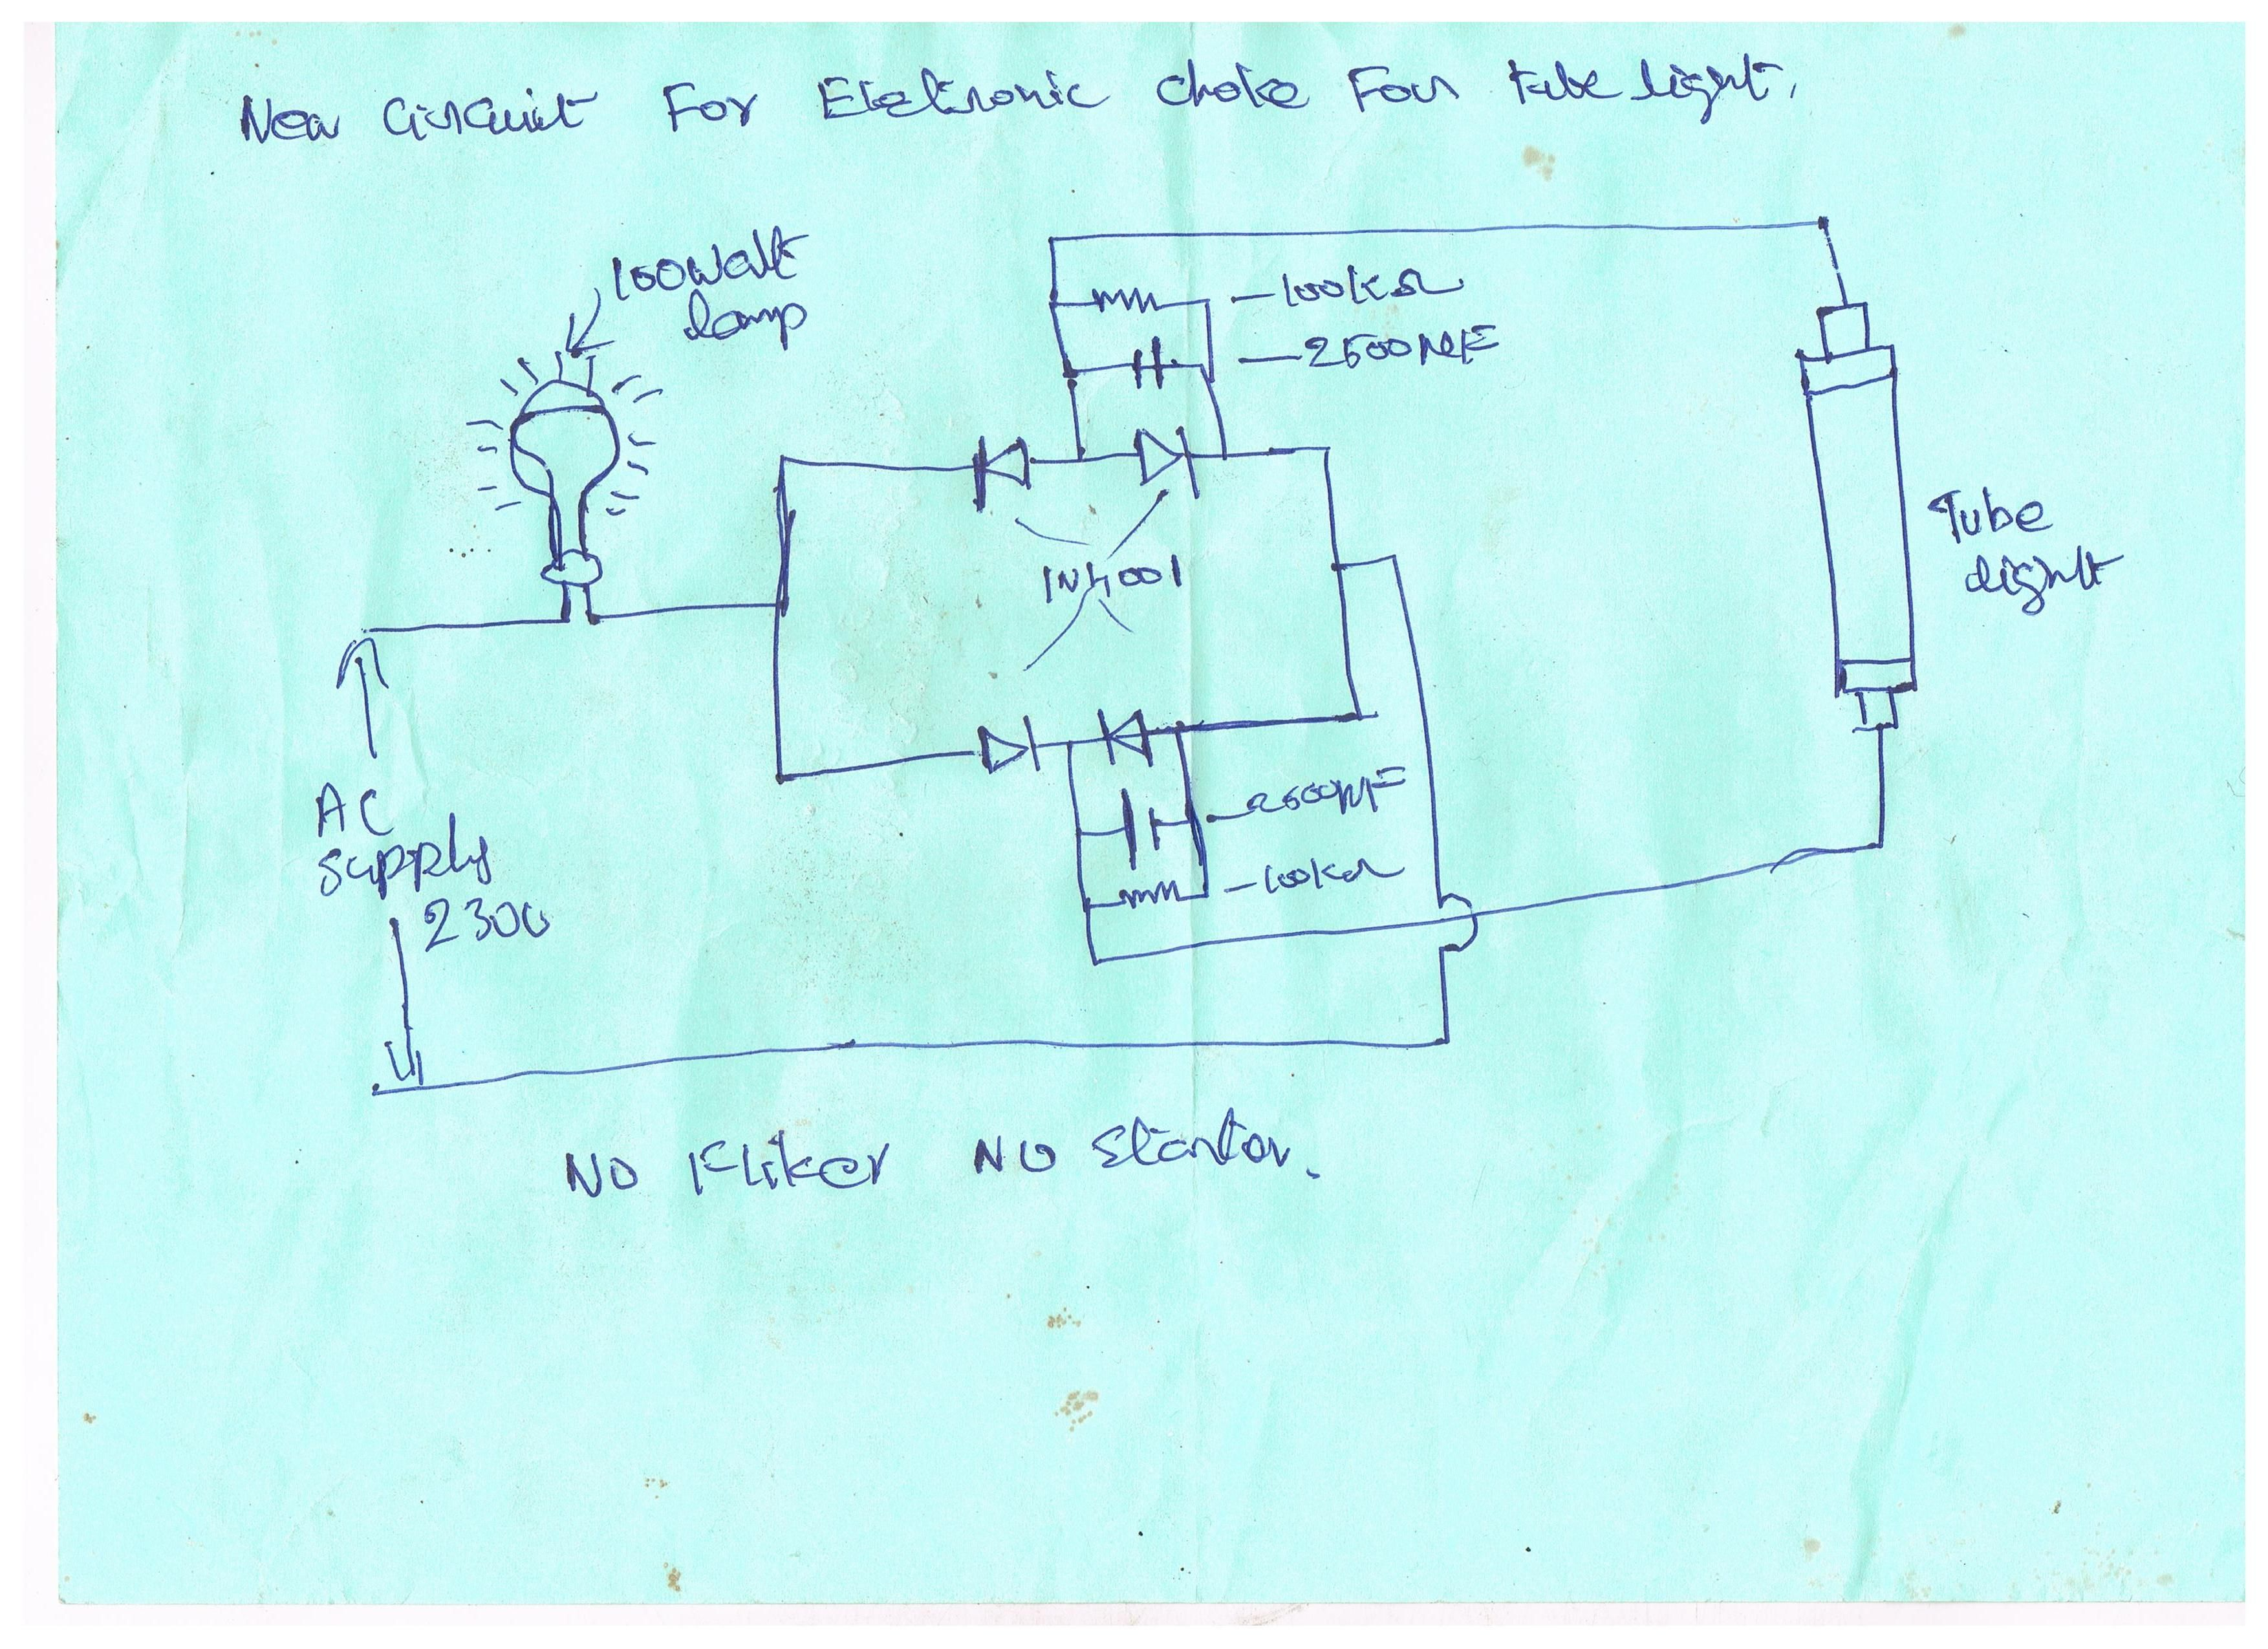 small resolution of new circuit for electronic choke for tubelight